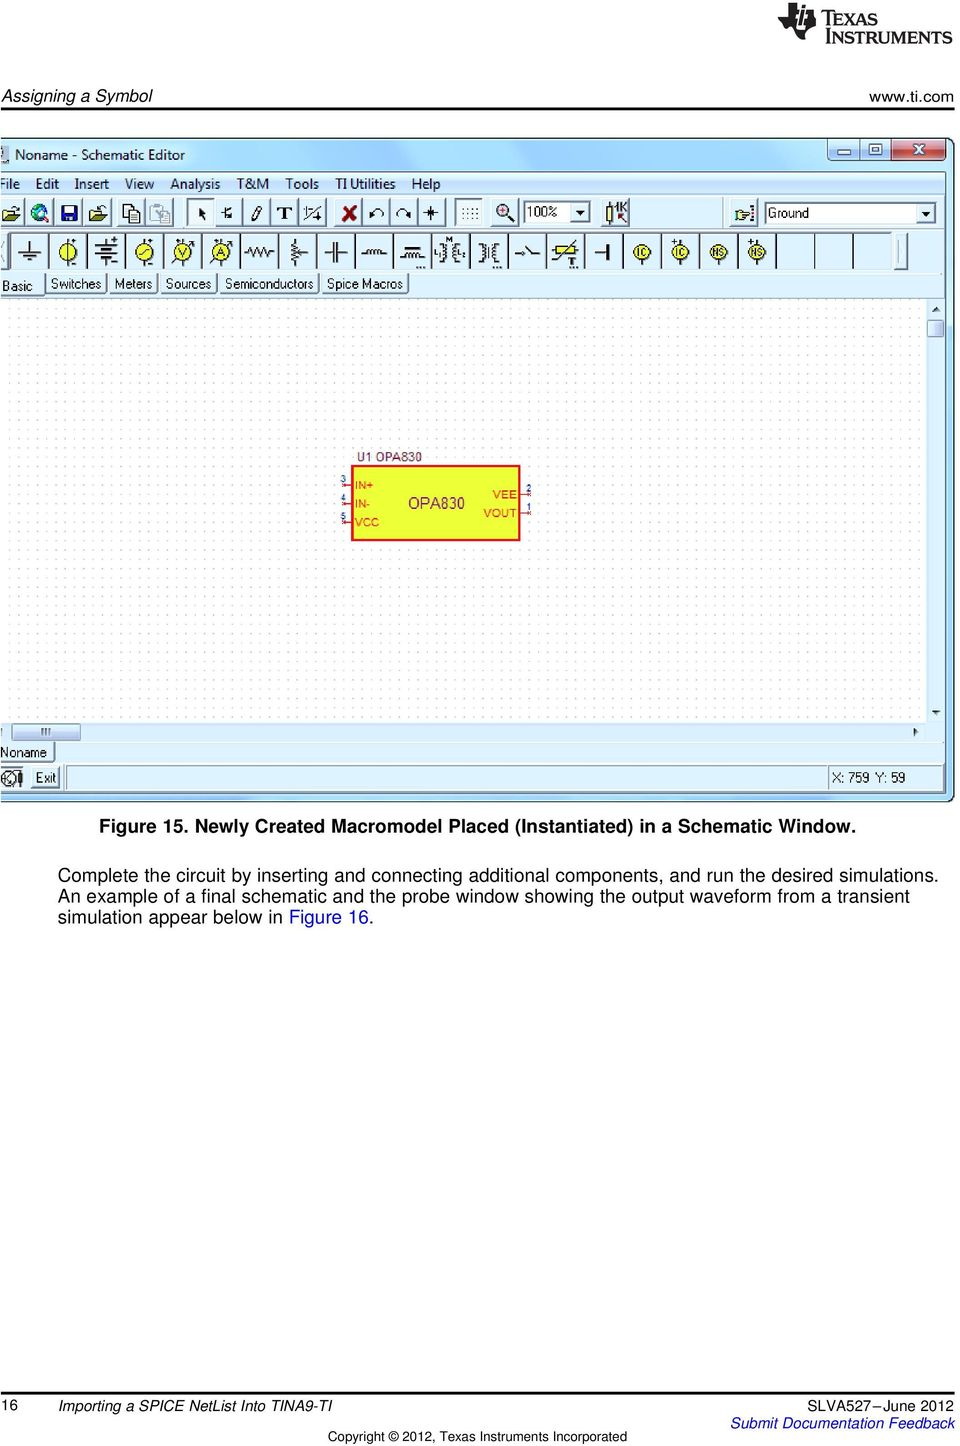 Complete the circuit by inserting and connecting additional components, and run the desired